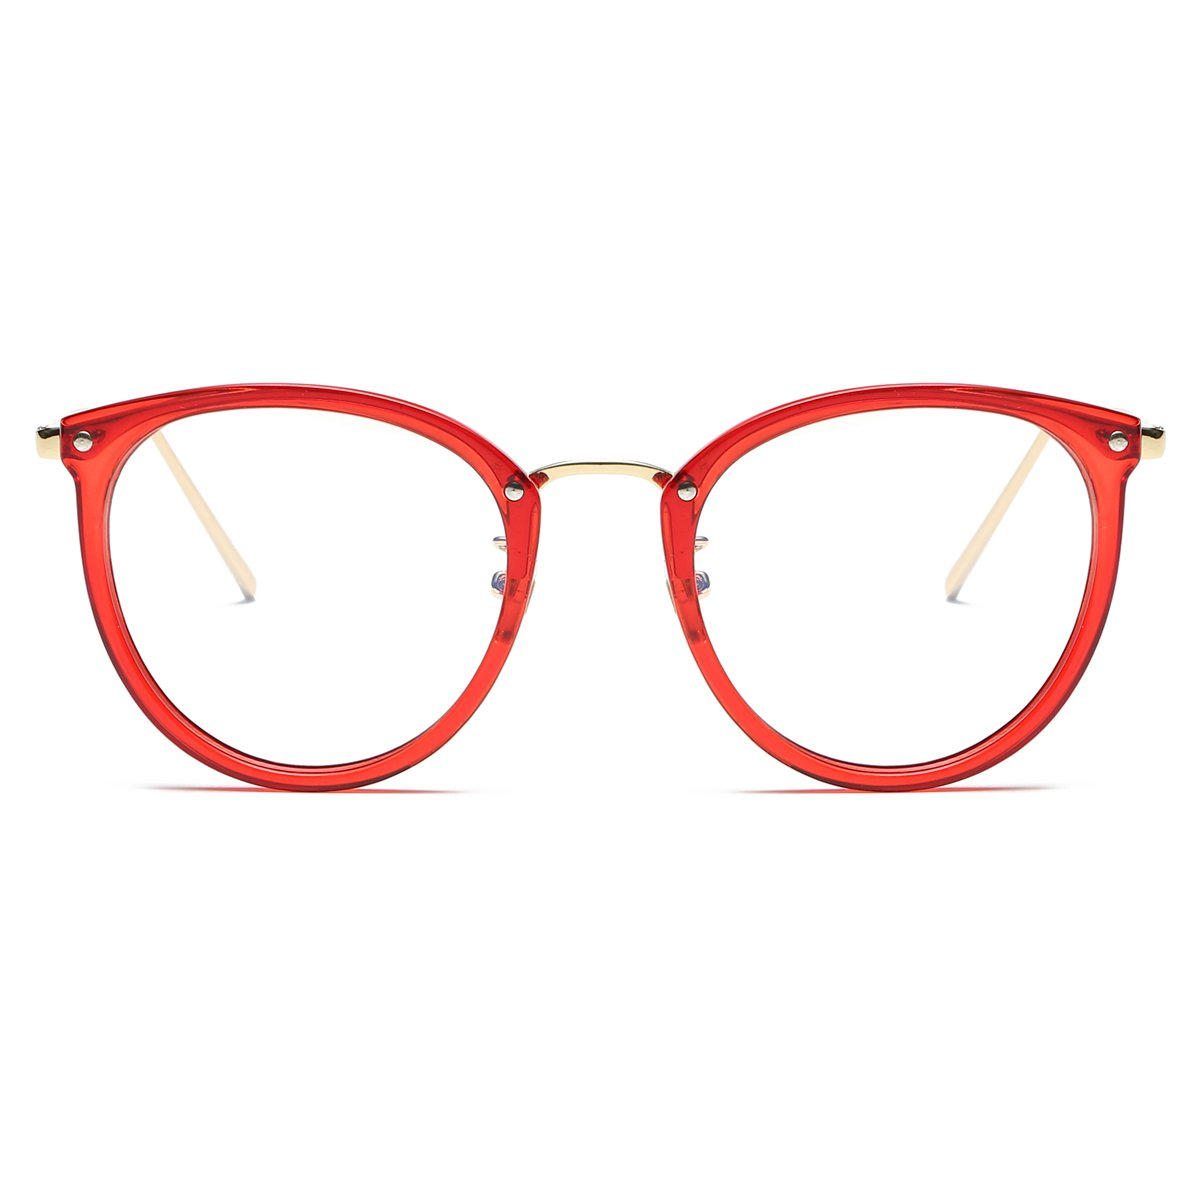 5f27ec75a4 Amazon.com  Amomoma Womens Fashion Clear Lens Round Frame Eye Glasses  AM5001 Red Frame Clear Lens  Clothing